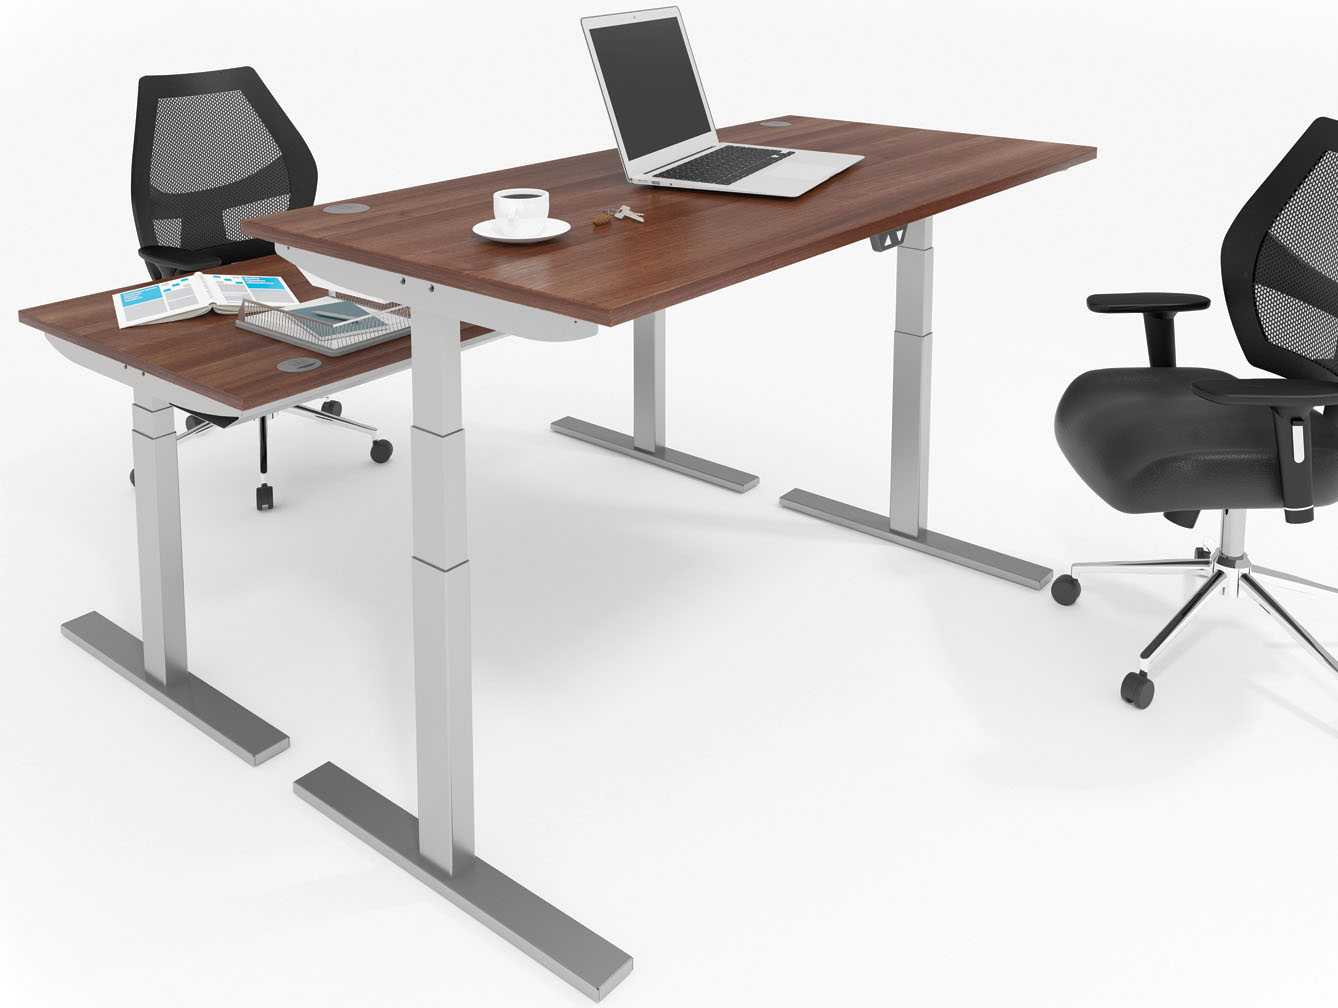 Sit to stand desk uk 100 lifespan treadmill desk my life for Office chairs for standing desks